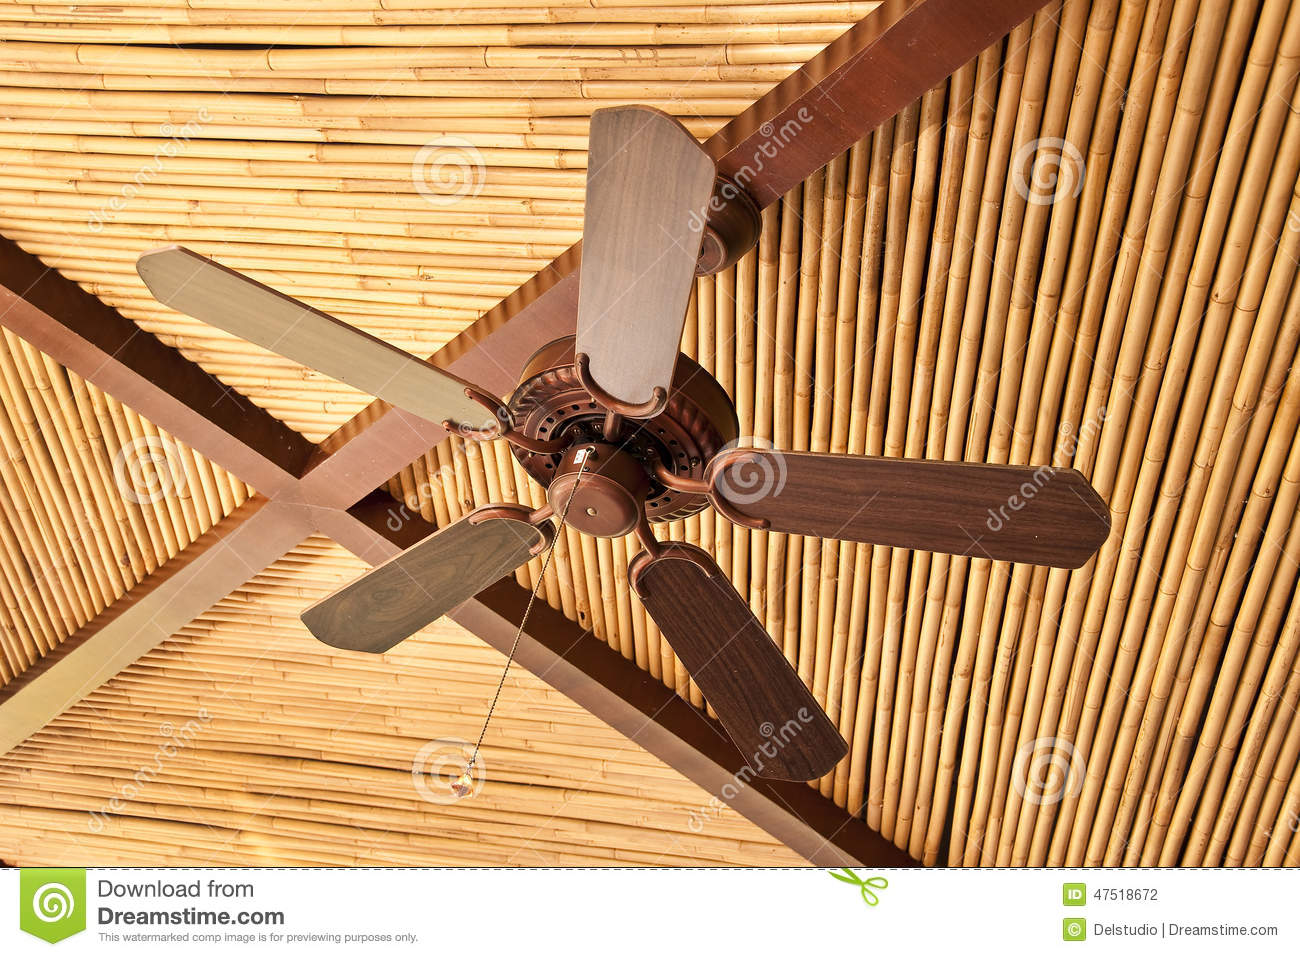 dlrn ceiling designs steel fan wood stainless indoor concepts ceilings design